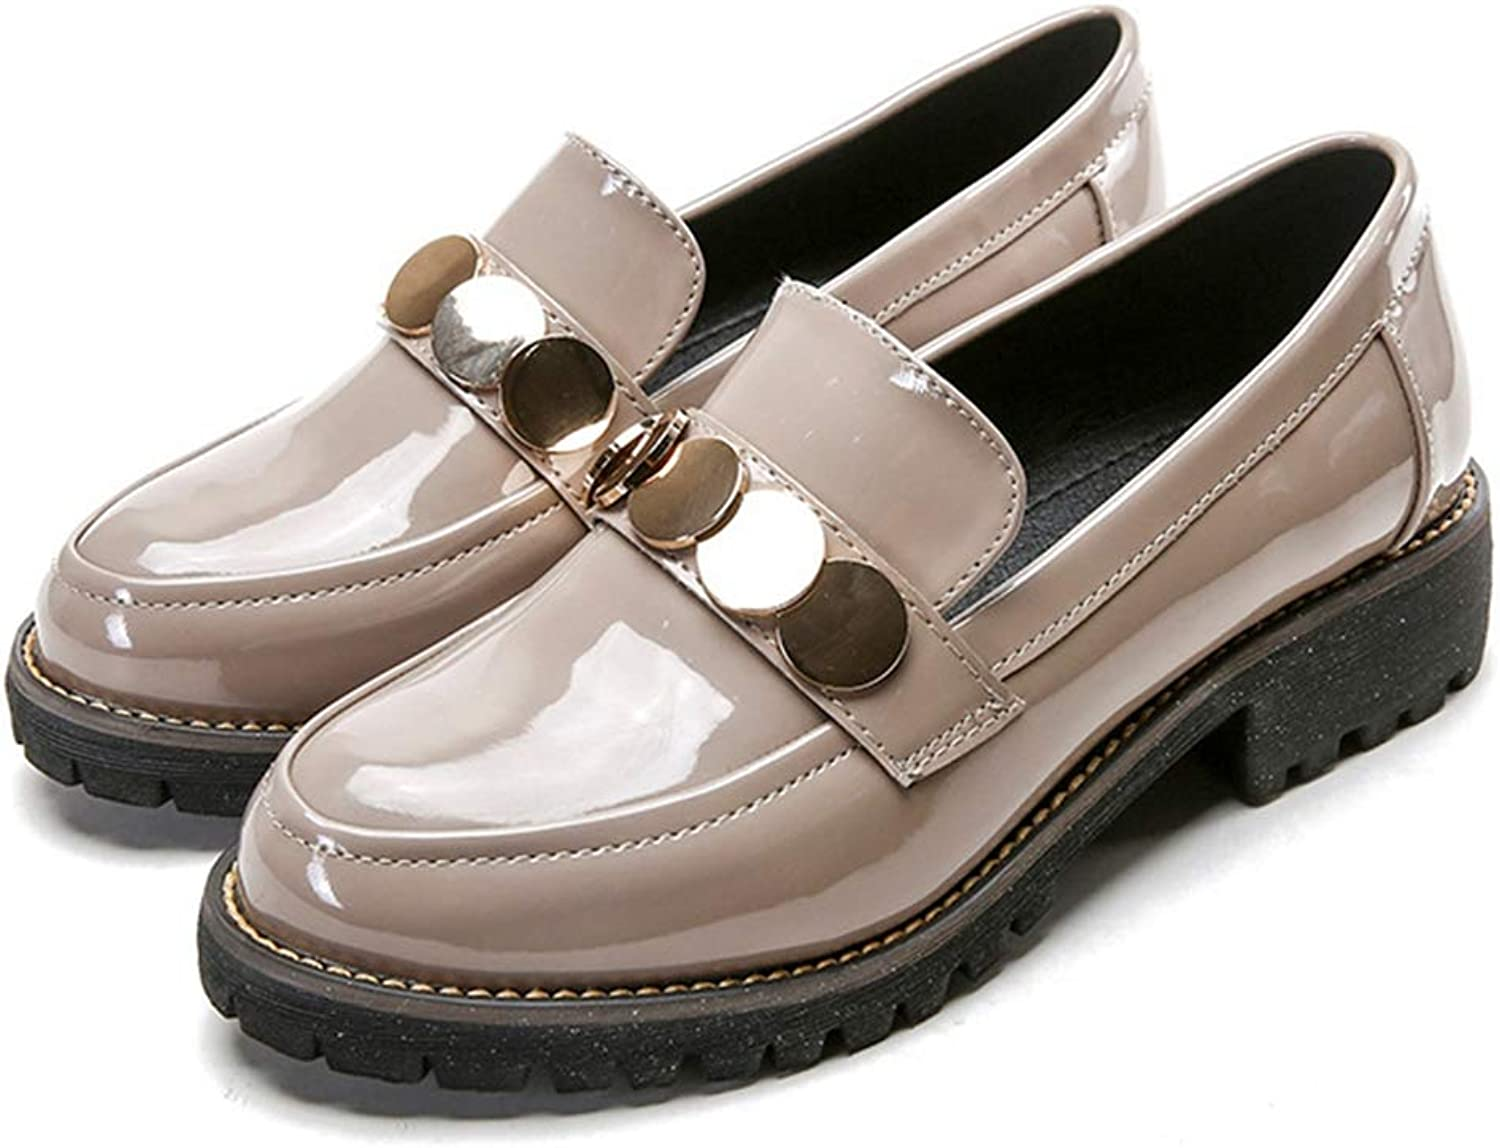 CYBLING Women's Round Toe Patent Leather Slip On Oxfords Low Heel Loafers shoes